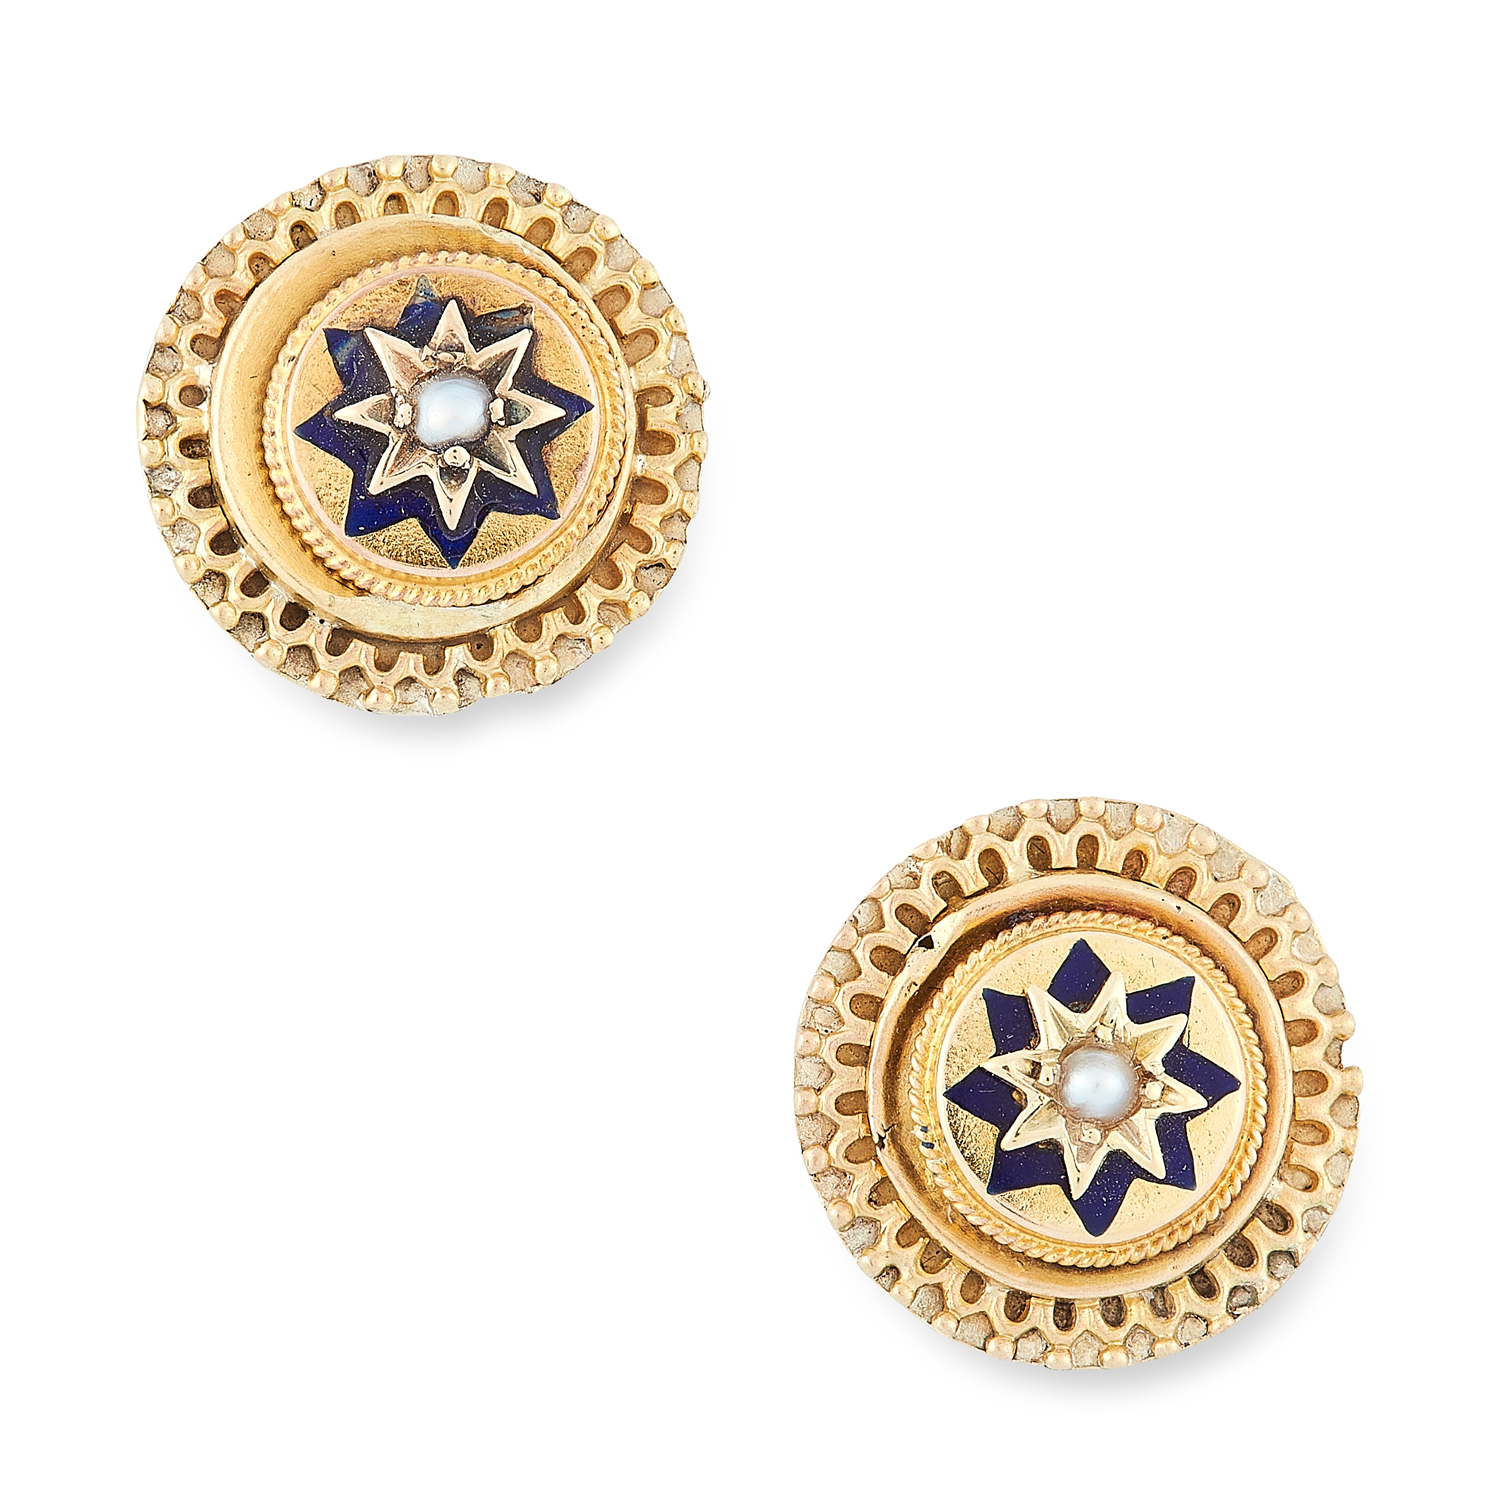 A PAIR OF ANTIQUE PEARL AND ENAMEL STUD EARRINGS, 19TH CENTURY in yellow gold, each set with a pearl